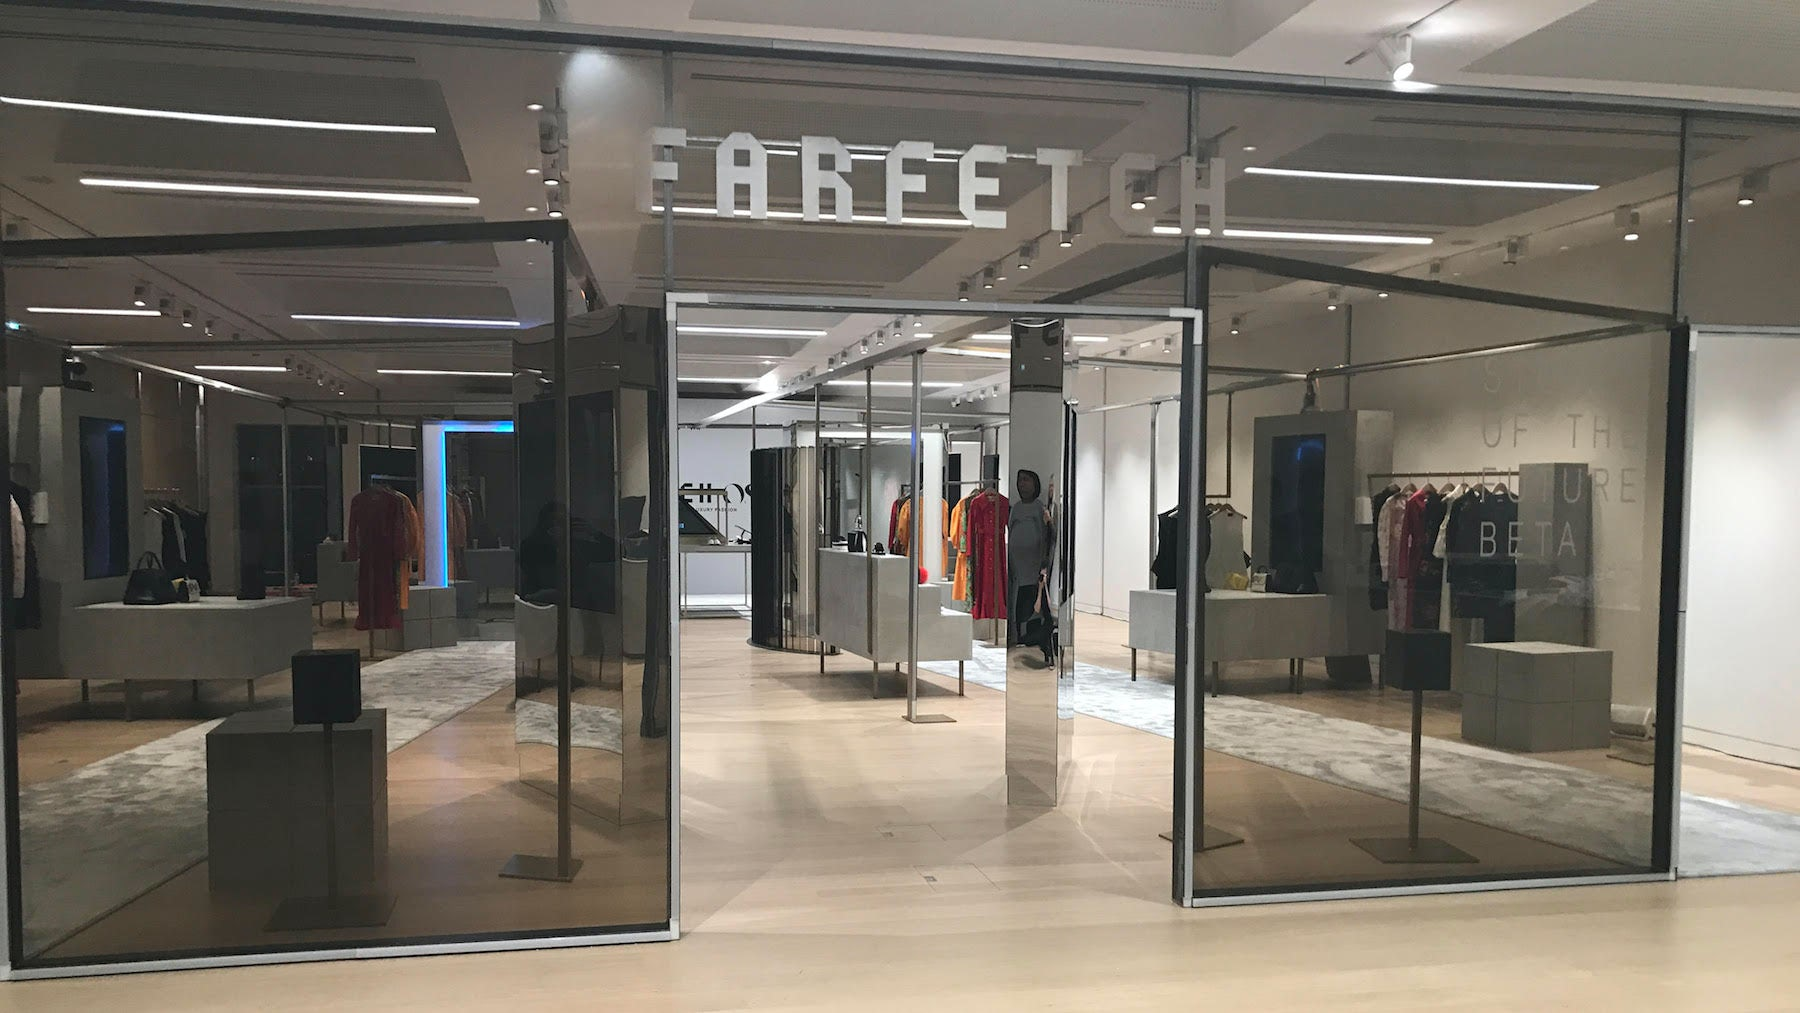 Inside Farfetch's Store of the Future demonstration   Source: Courtesy Farfetch